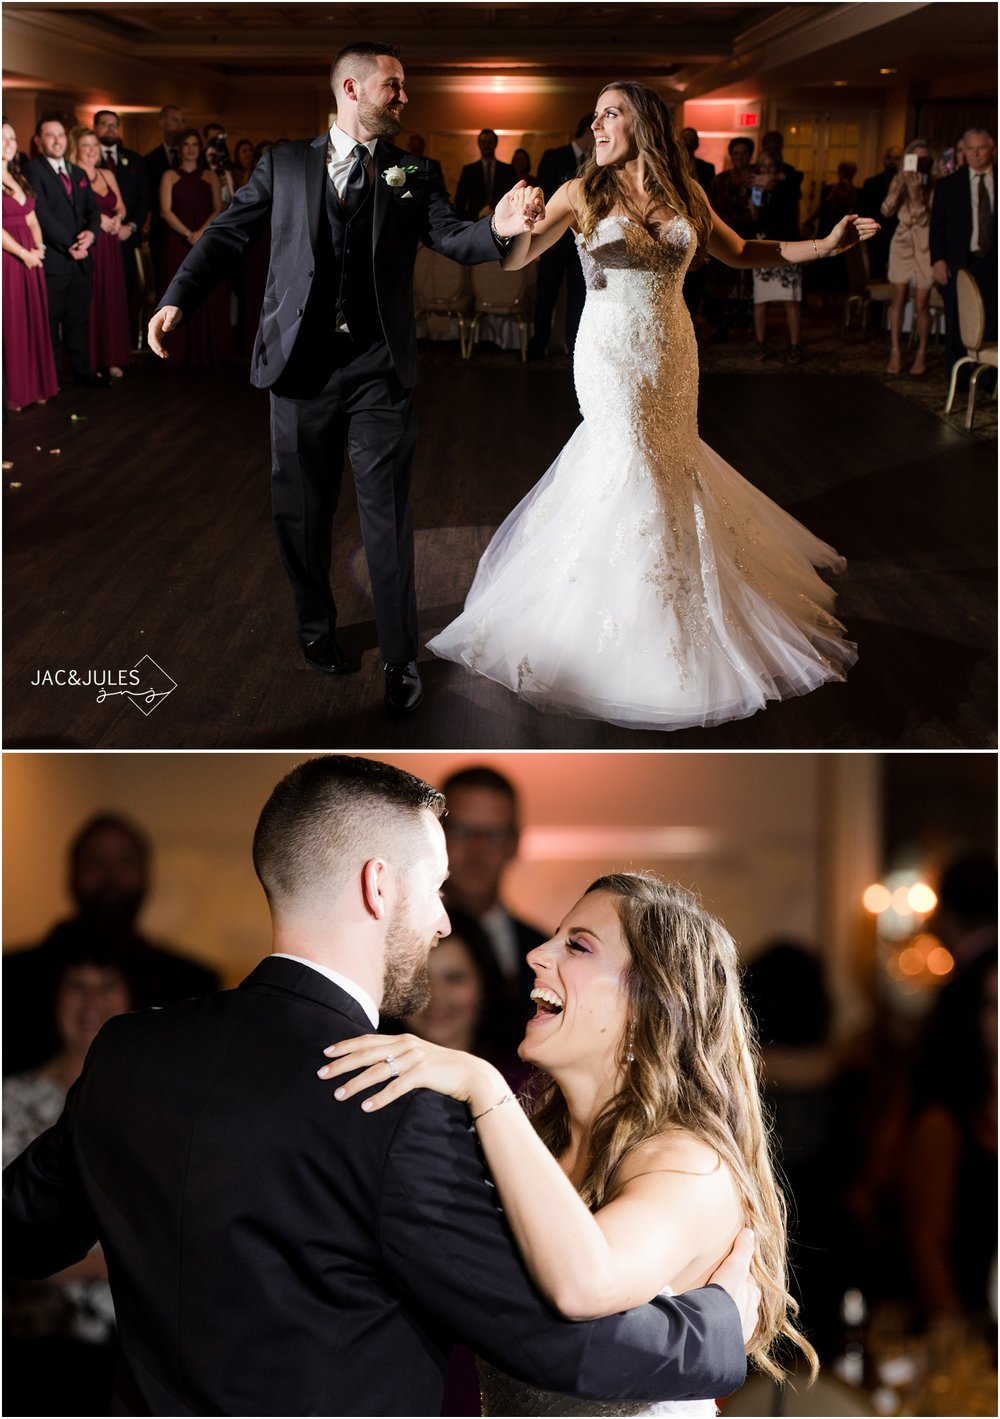 Wedding reception first dance at The Olde Mill Inn in Basking Ridge, NJ.